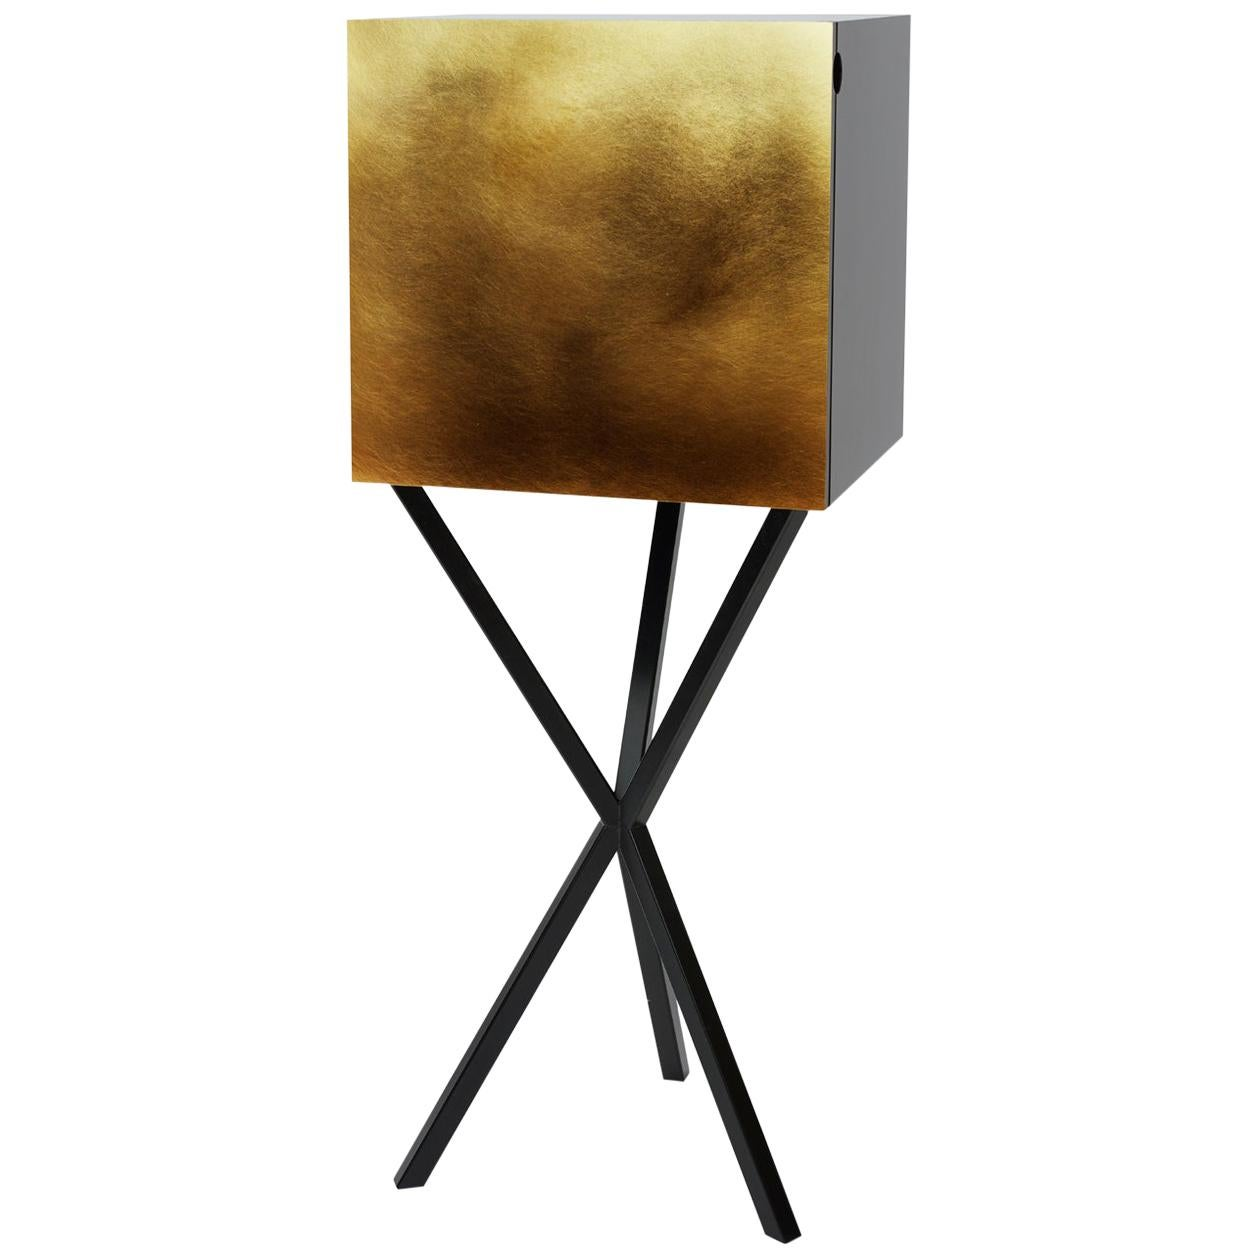 Neb Contemporary Bar Unit with Flip Door Front in Brass by Per Soderberg